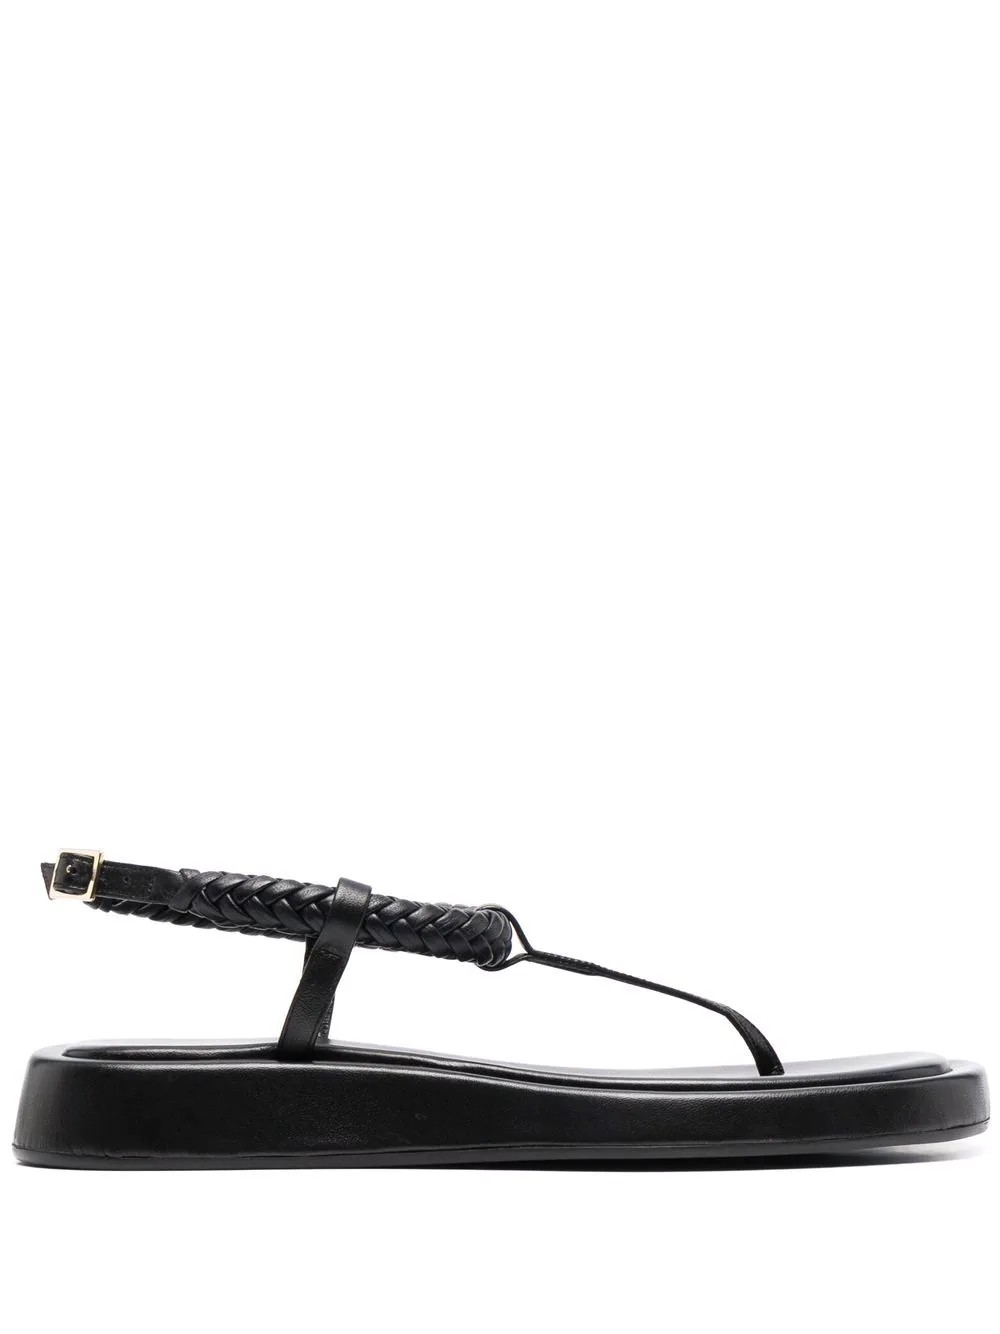 Rosie 3 Flat thong sandal with braided